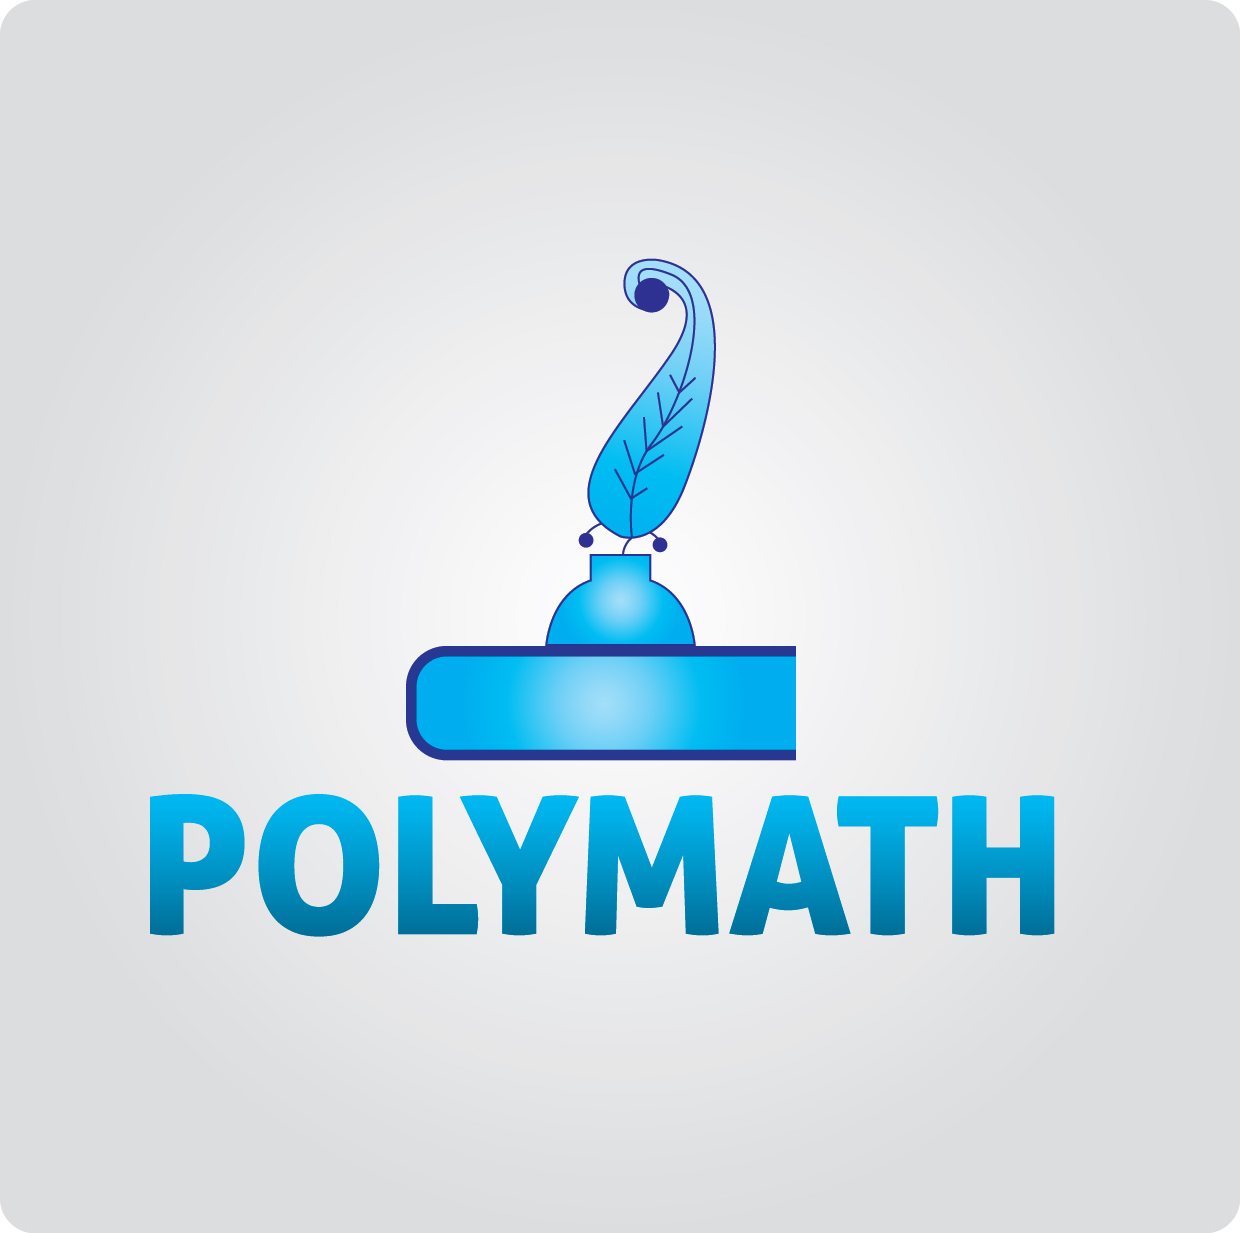 Logo Design by mediaproductionart - Entry No. 26 in the Logo Design Contest Imaginative Logo Design for Polymath.